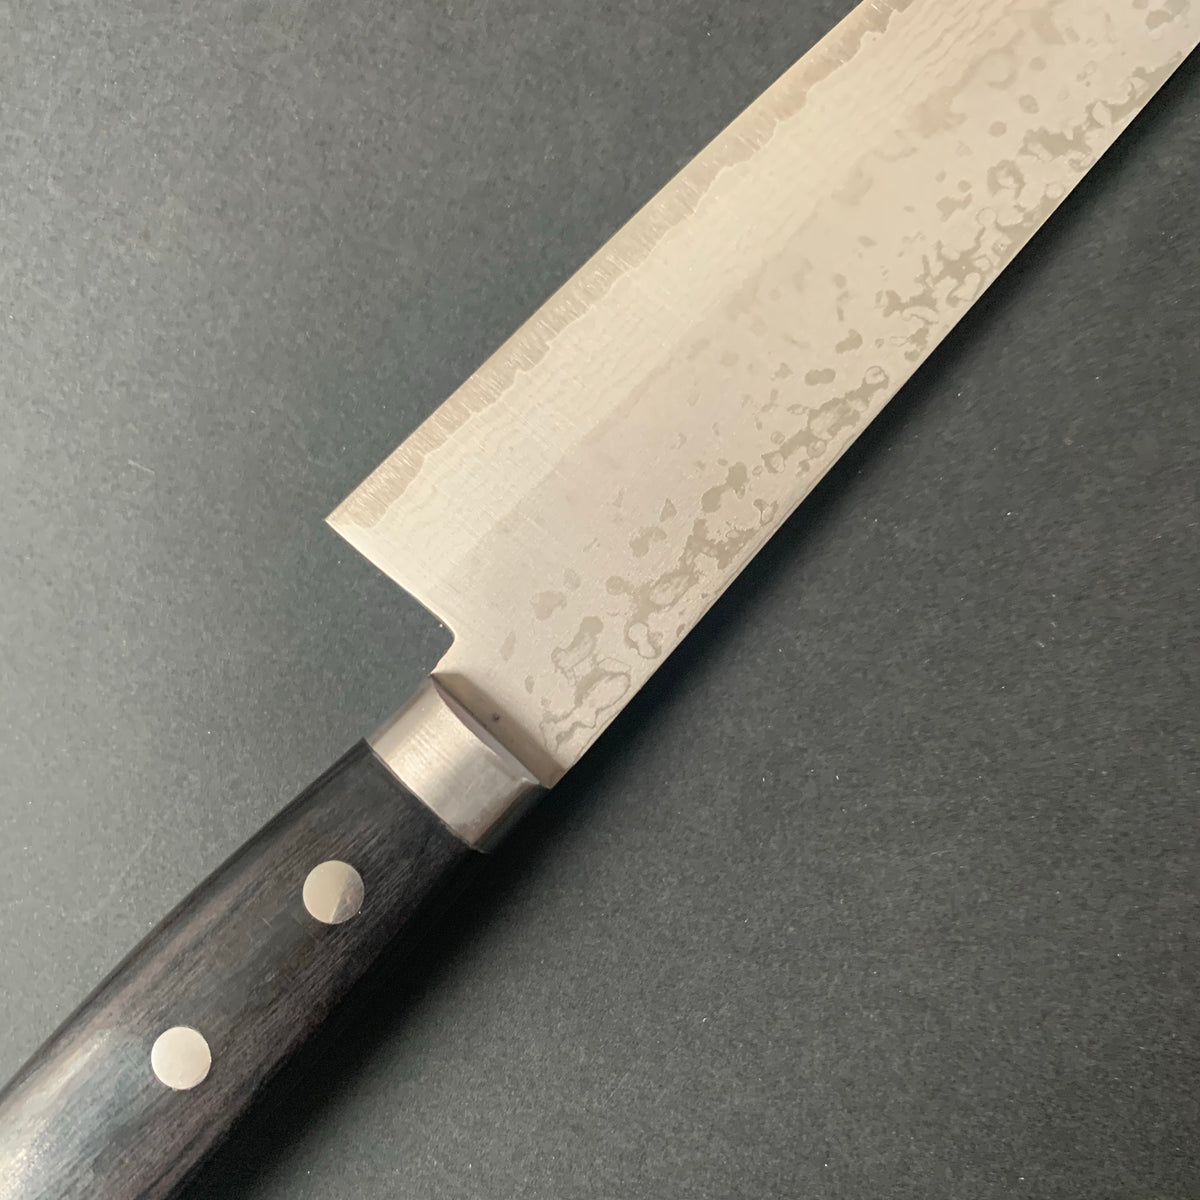 Gyuto knife, VG10, damascus finish - Masutani